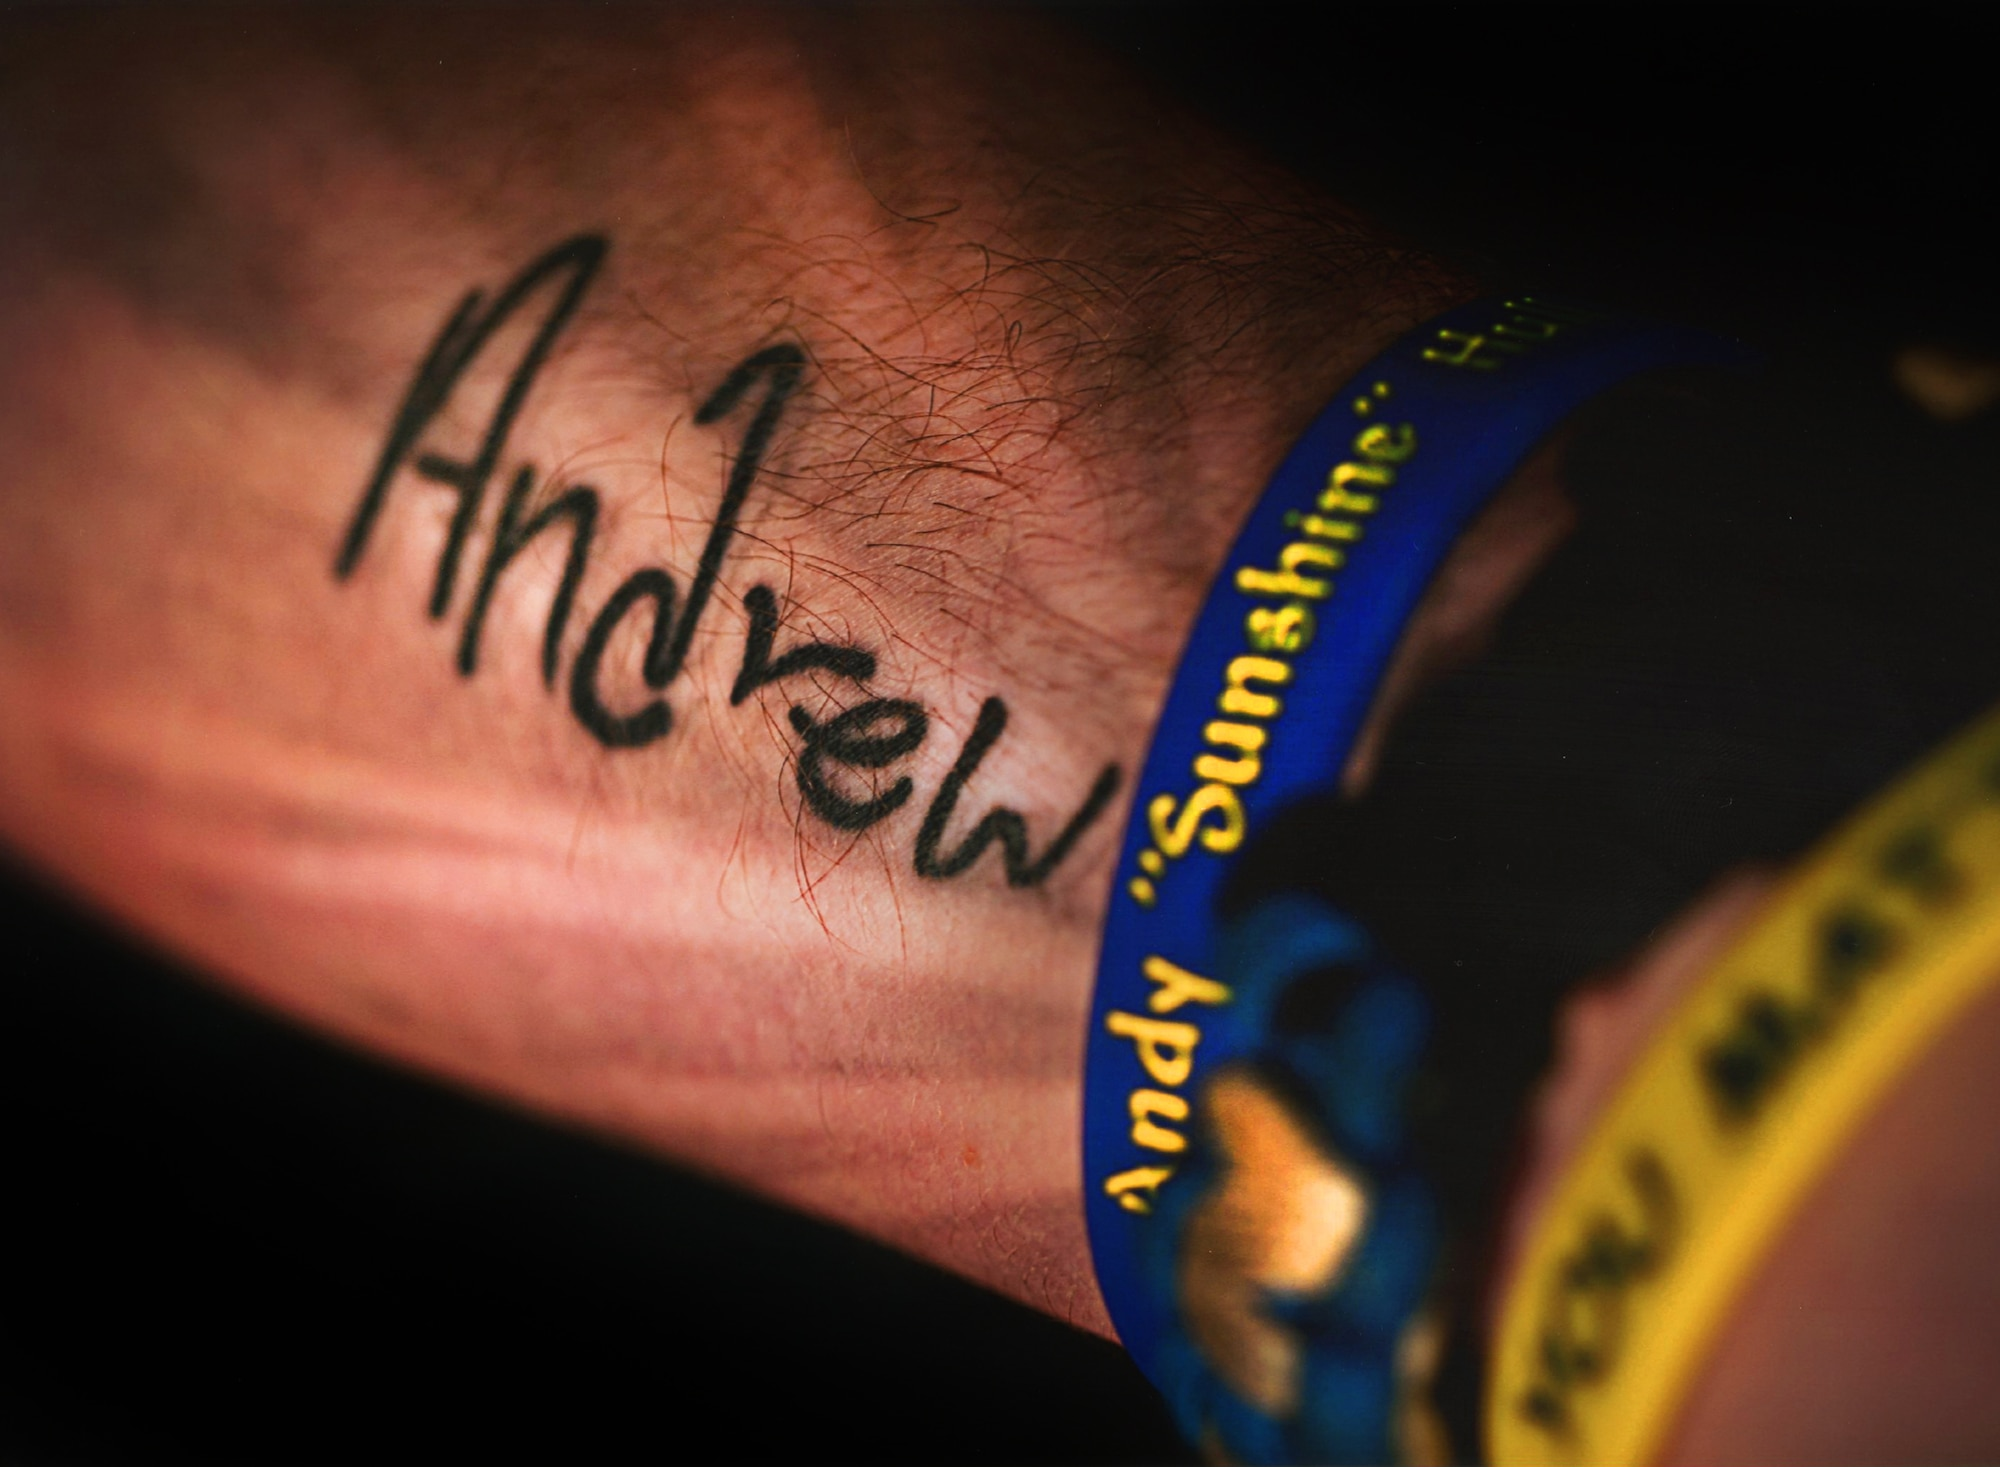 Staff Sgt. Joshua Hull displays his tattoo in memory of his younger brother, Andrew Hull. Andrew took his own life in December of 2012, when he was only 16-years-old. Since the incident, Hull has committed his time to spreading suicide awareness and prevention through the Andy Hull Sunshine Foundation. Hull is the NCO in charge of the Minot Air Force Base Honor Guard. (Courtesy photo)